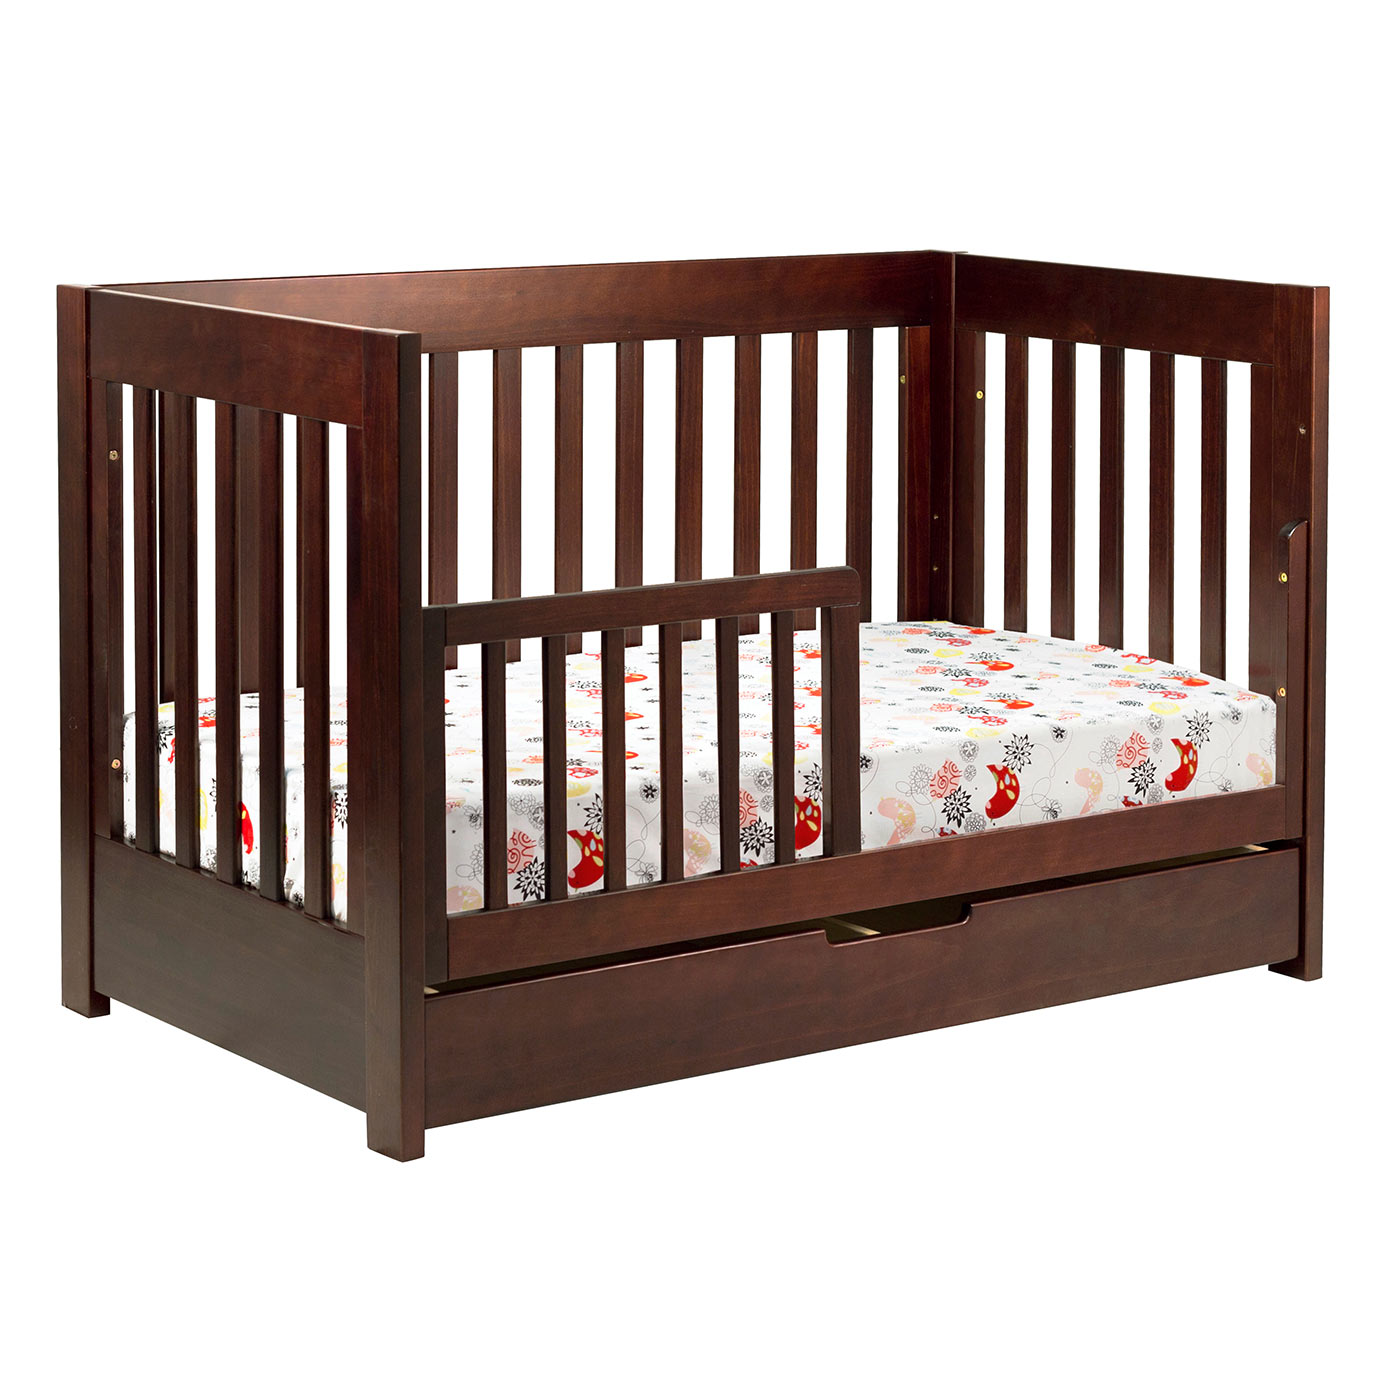 brown wooden crib by munire crib with storage for nursery furniture ideas